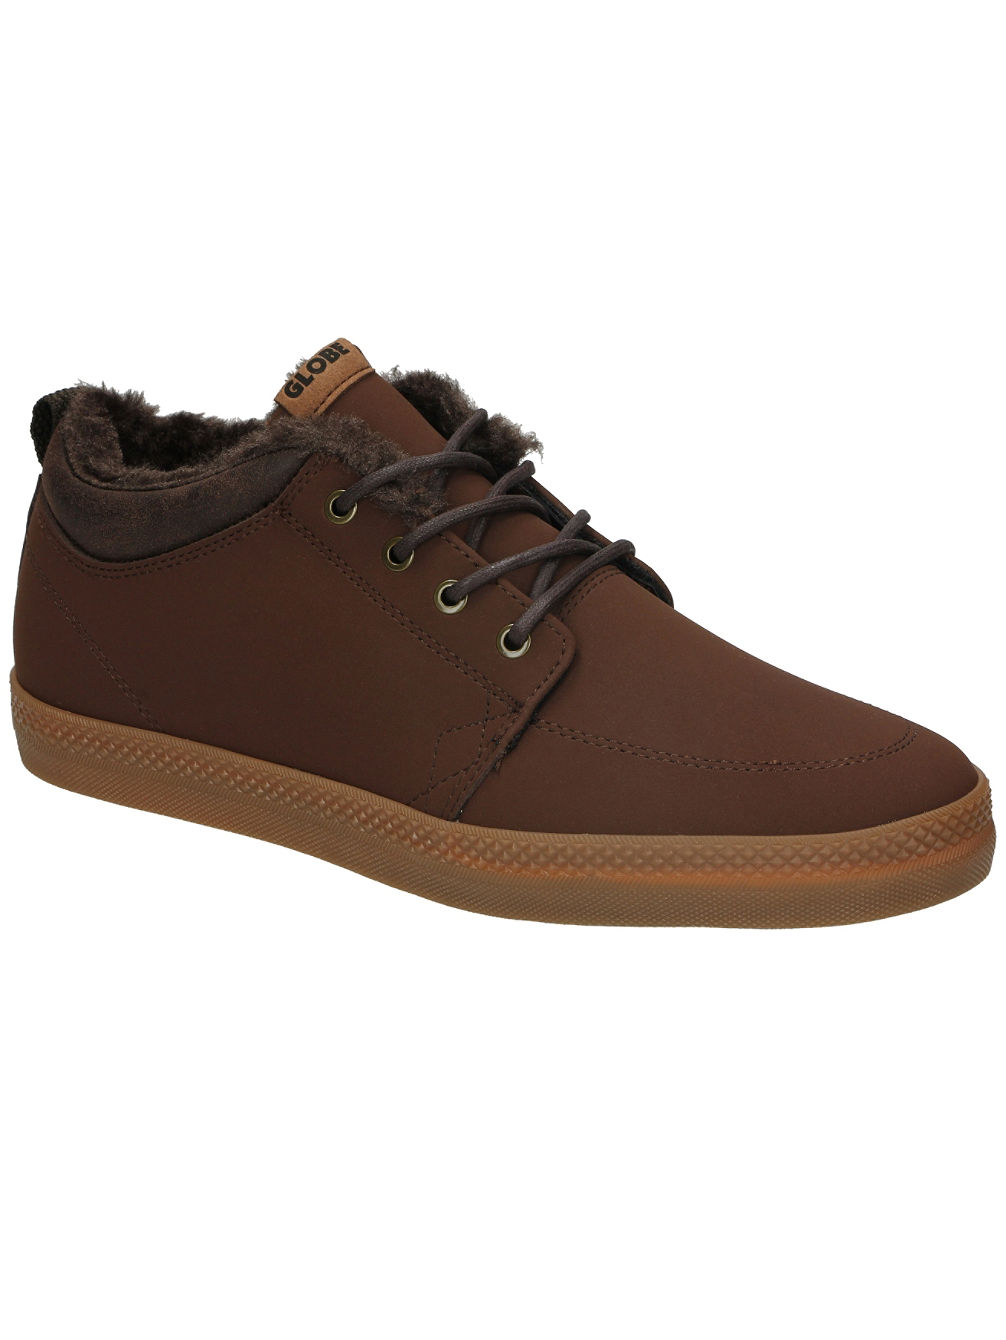 GS Chukka Shoes